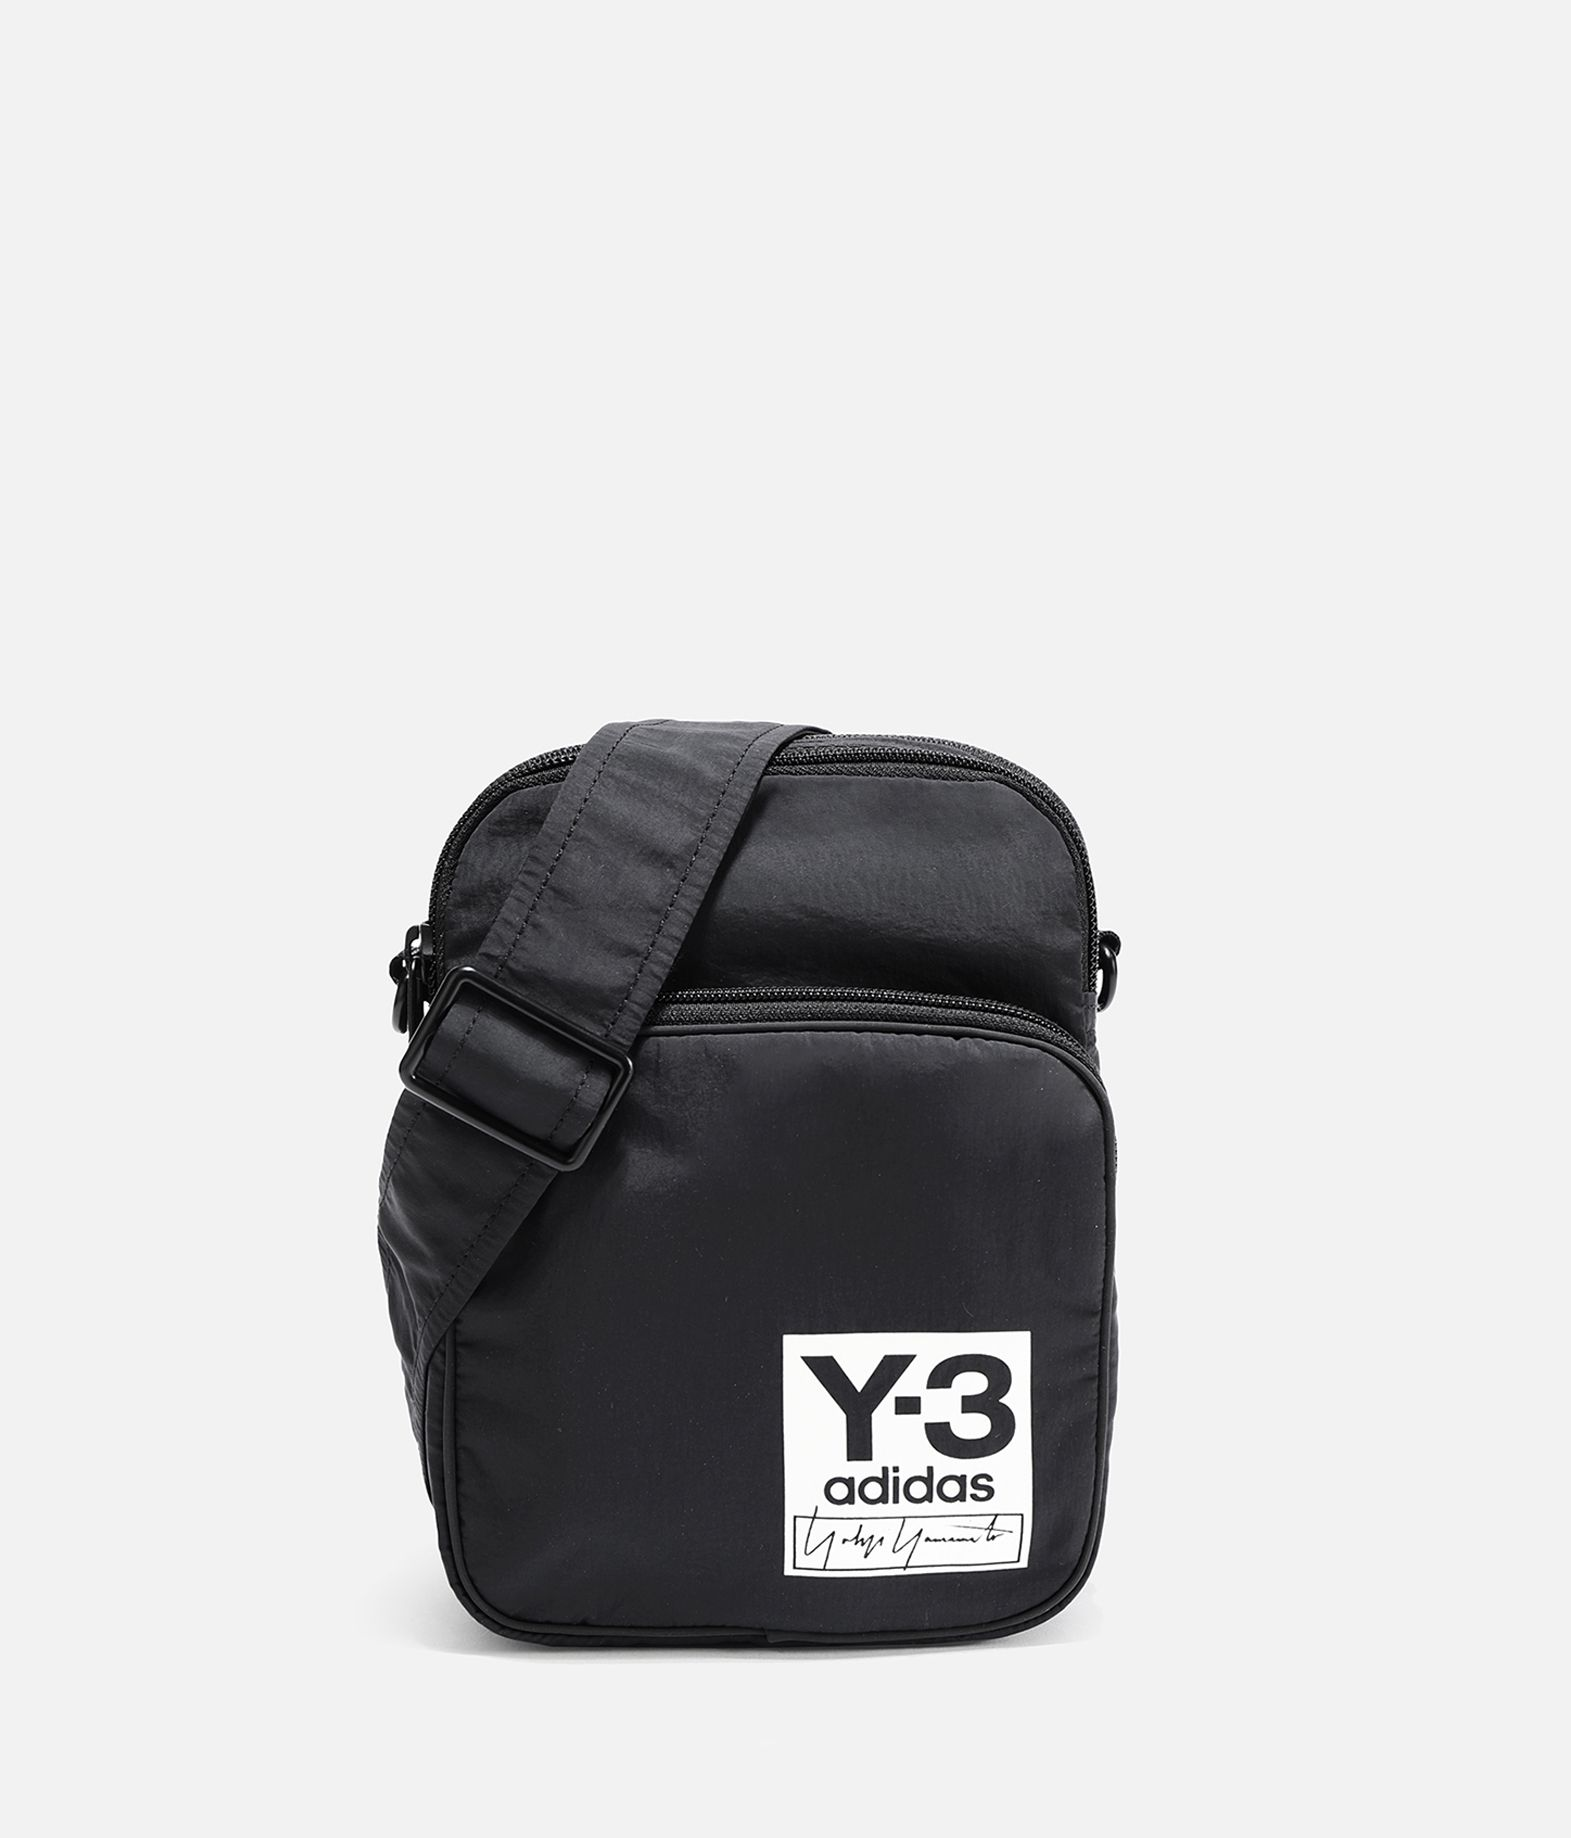 Y-3 Y-3 Packable Airliner Bag ショルダーバッグ E f